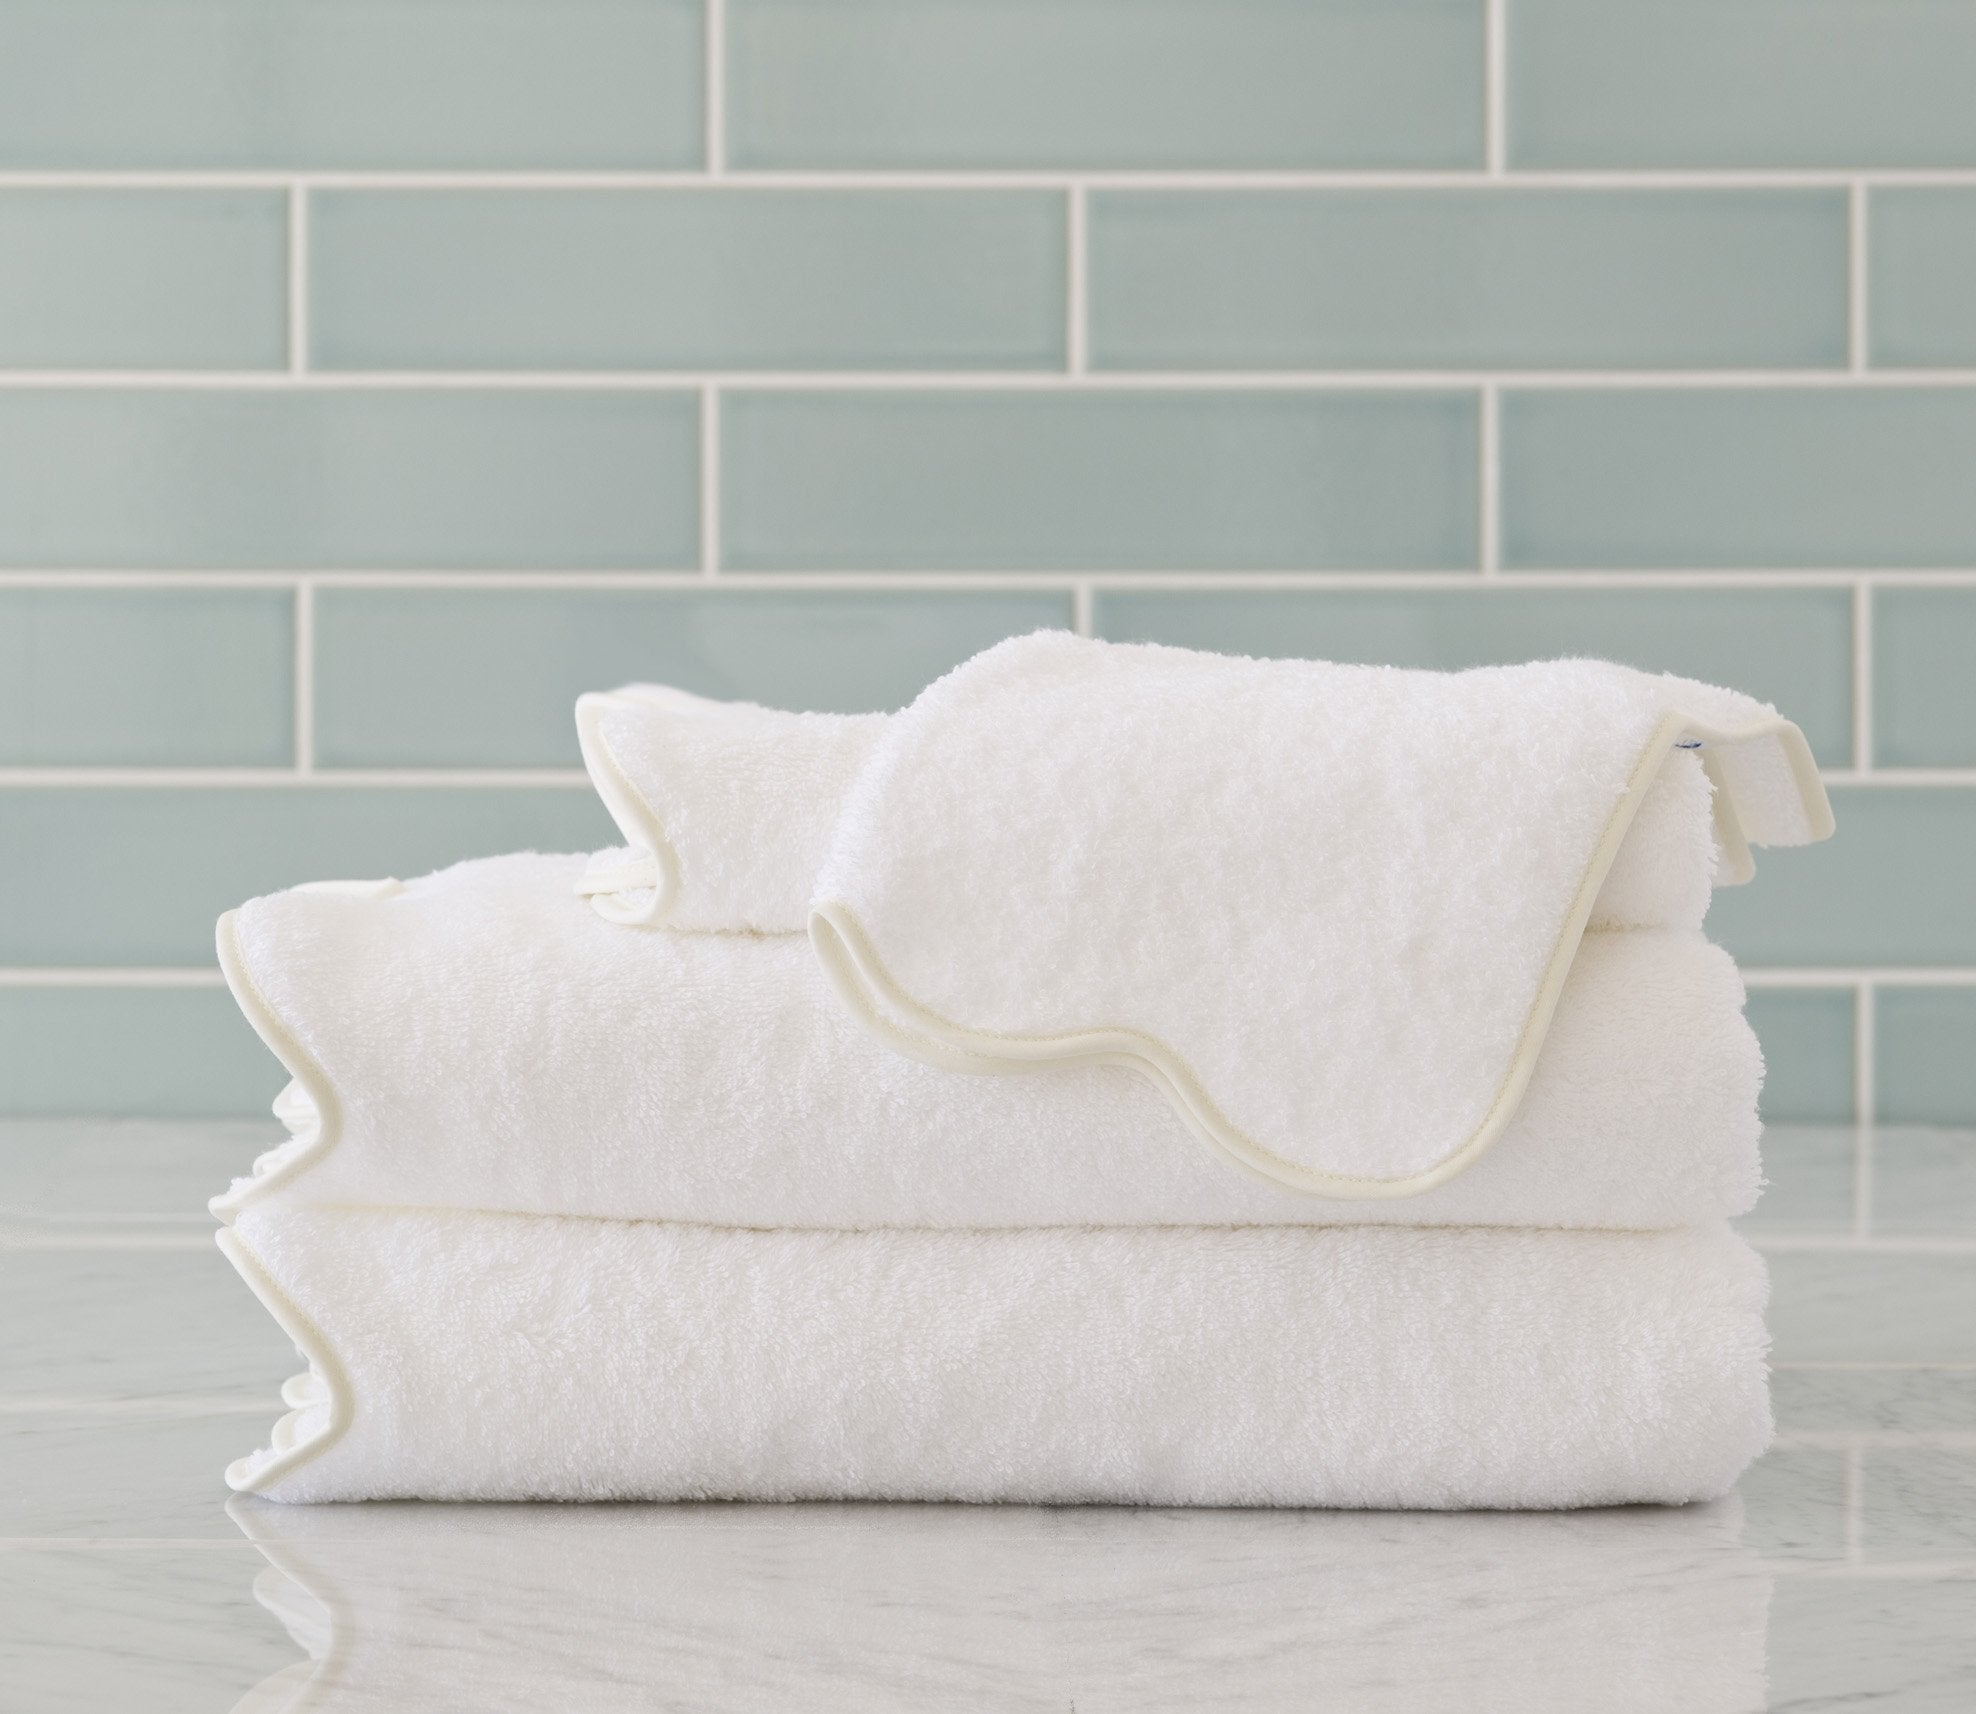 Scallop Bath Towel Ivory Product Image 1